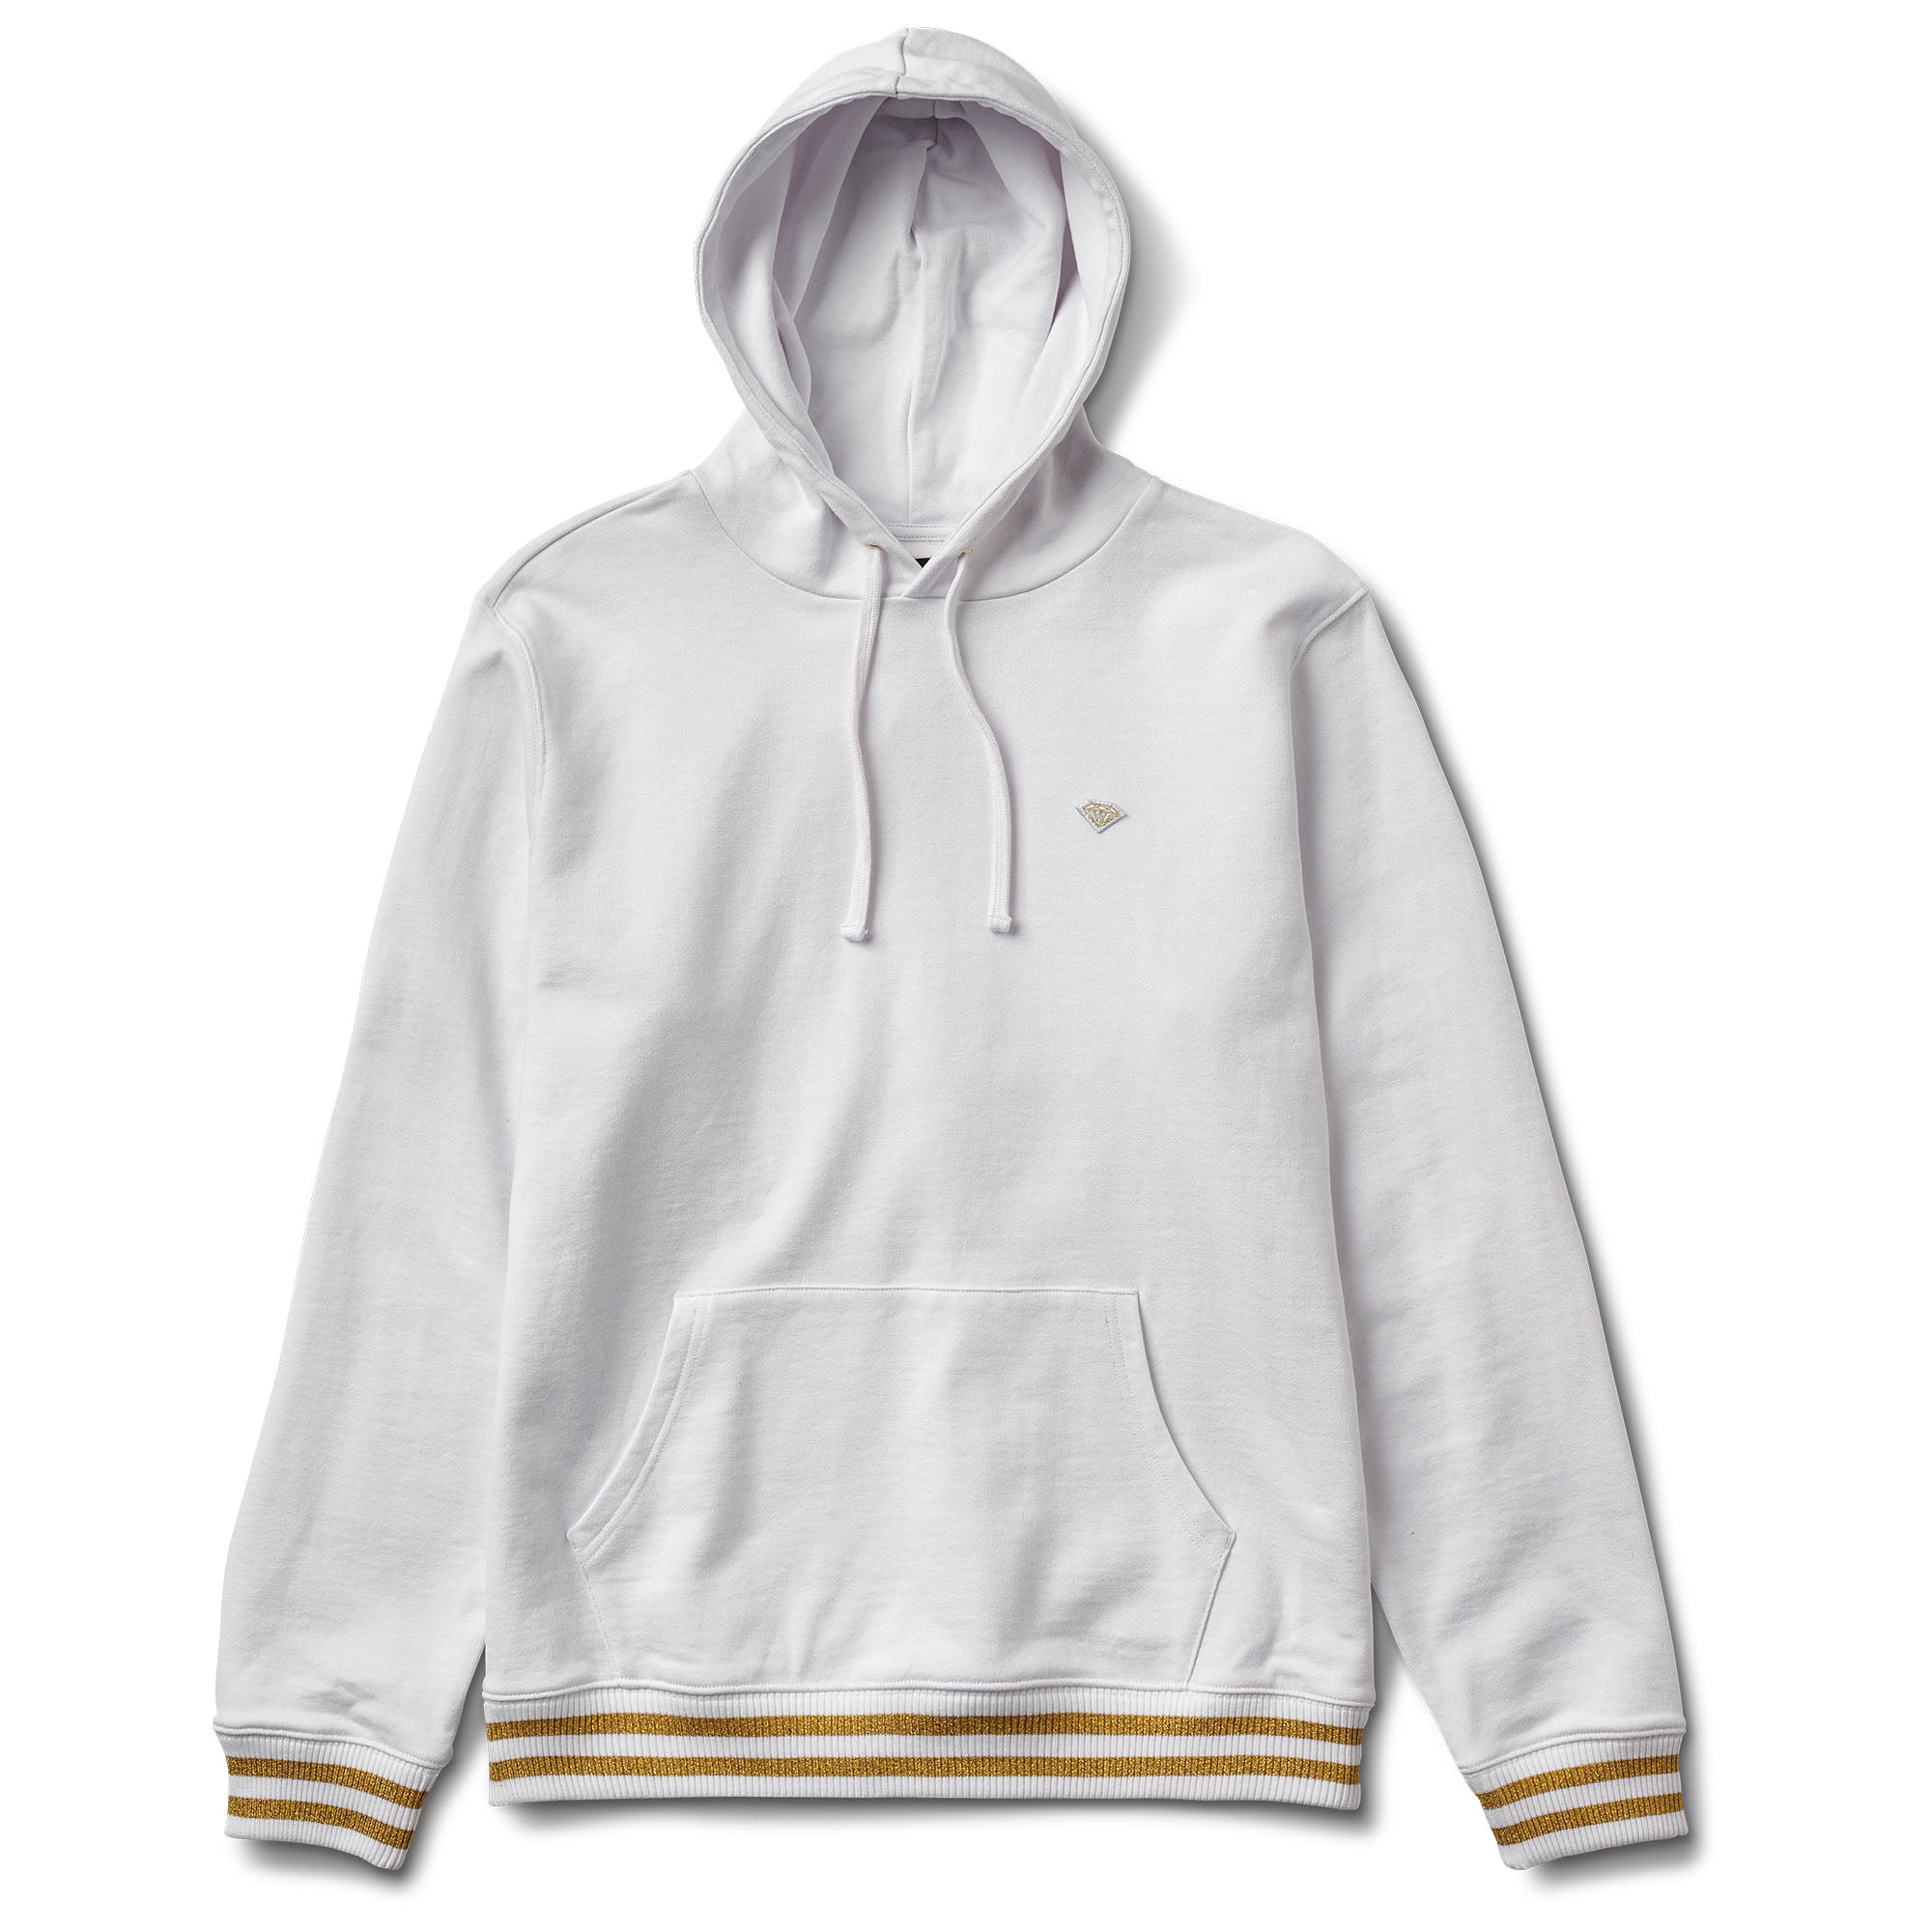 21be50b43 Brilliant Gold Patch Hoodie, Spring 2018 Delivery 2 Cut-N-Sew - Diamond